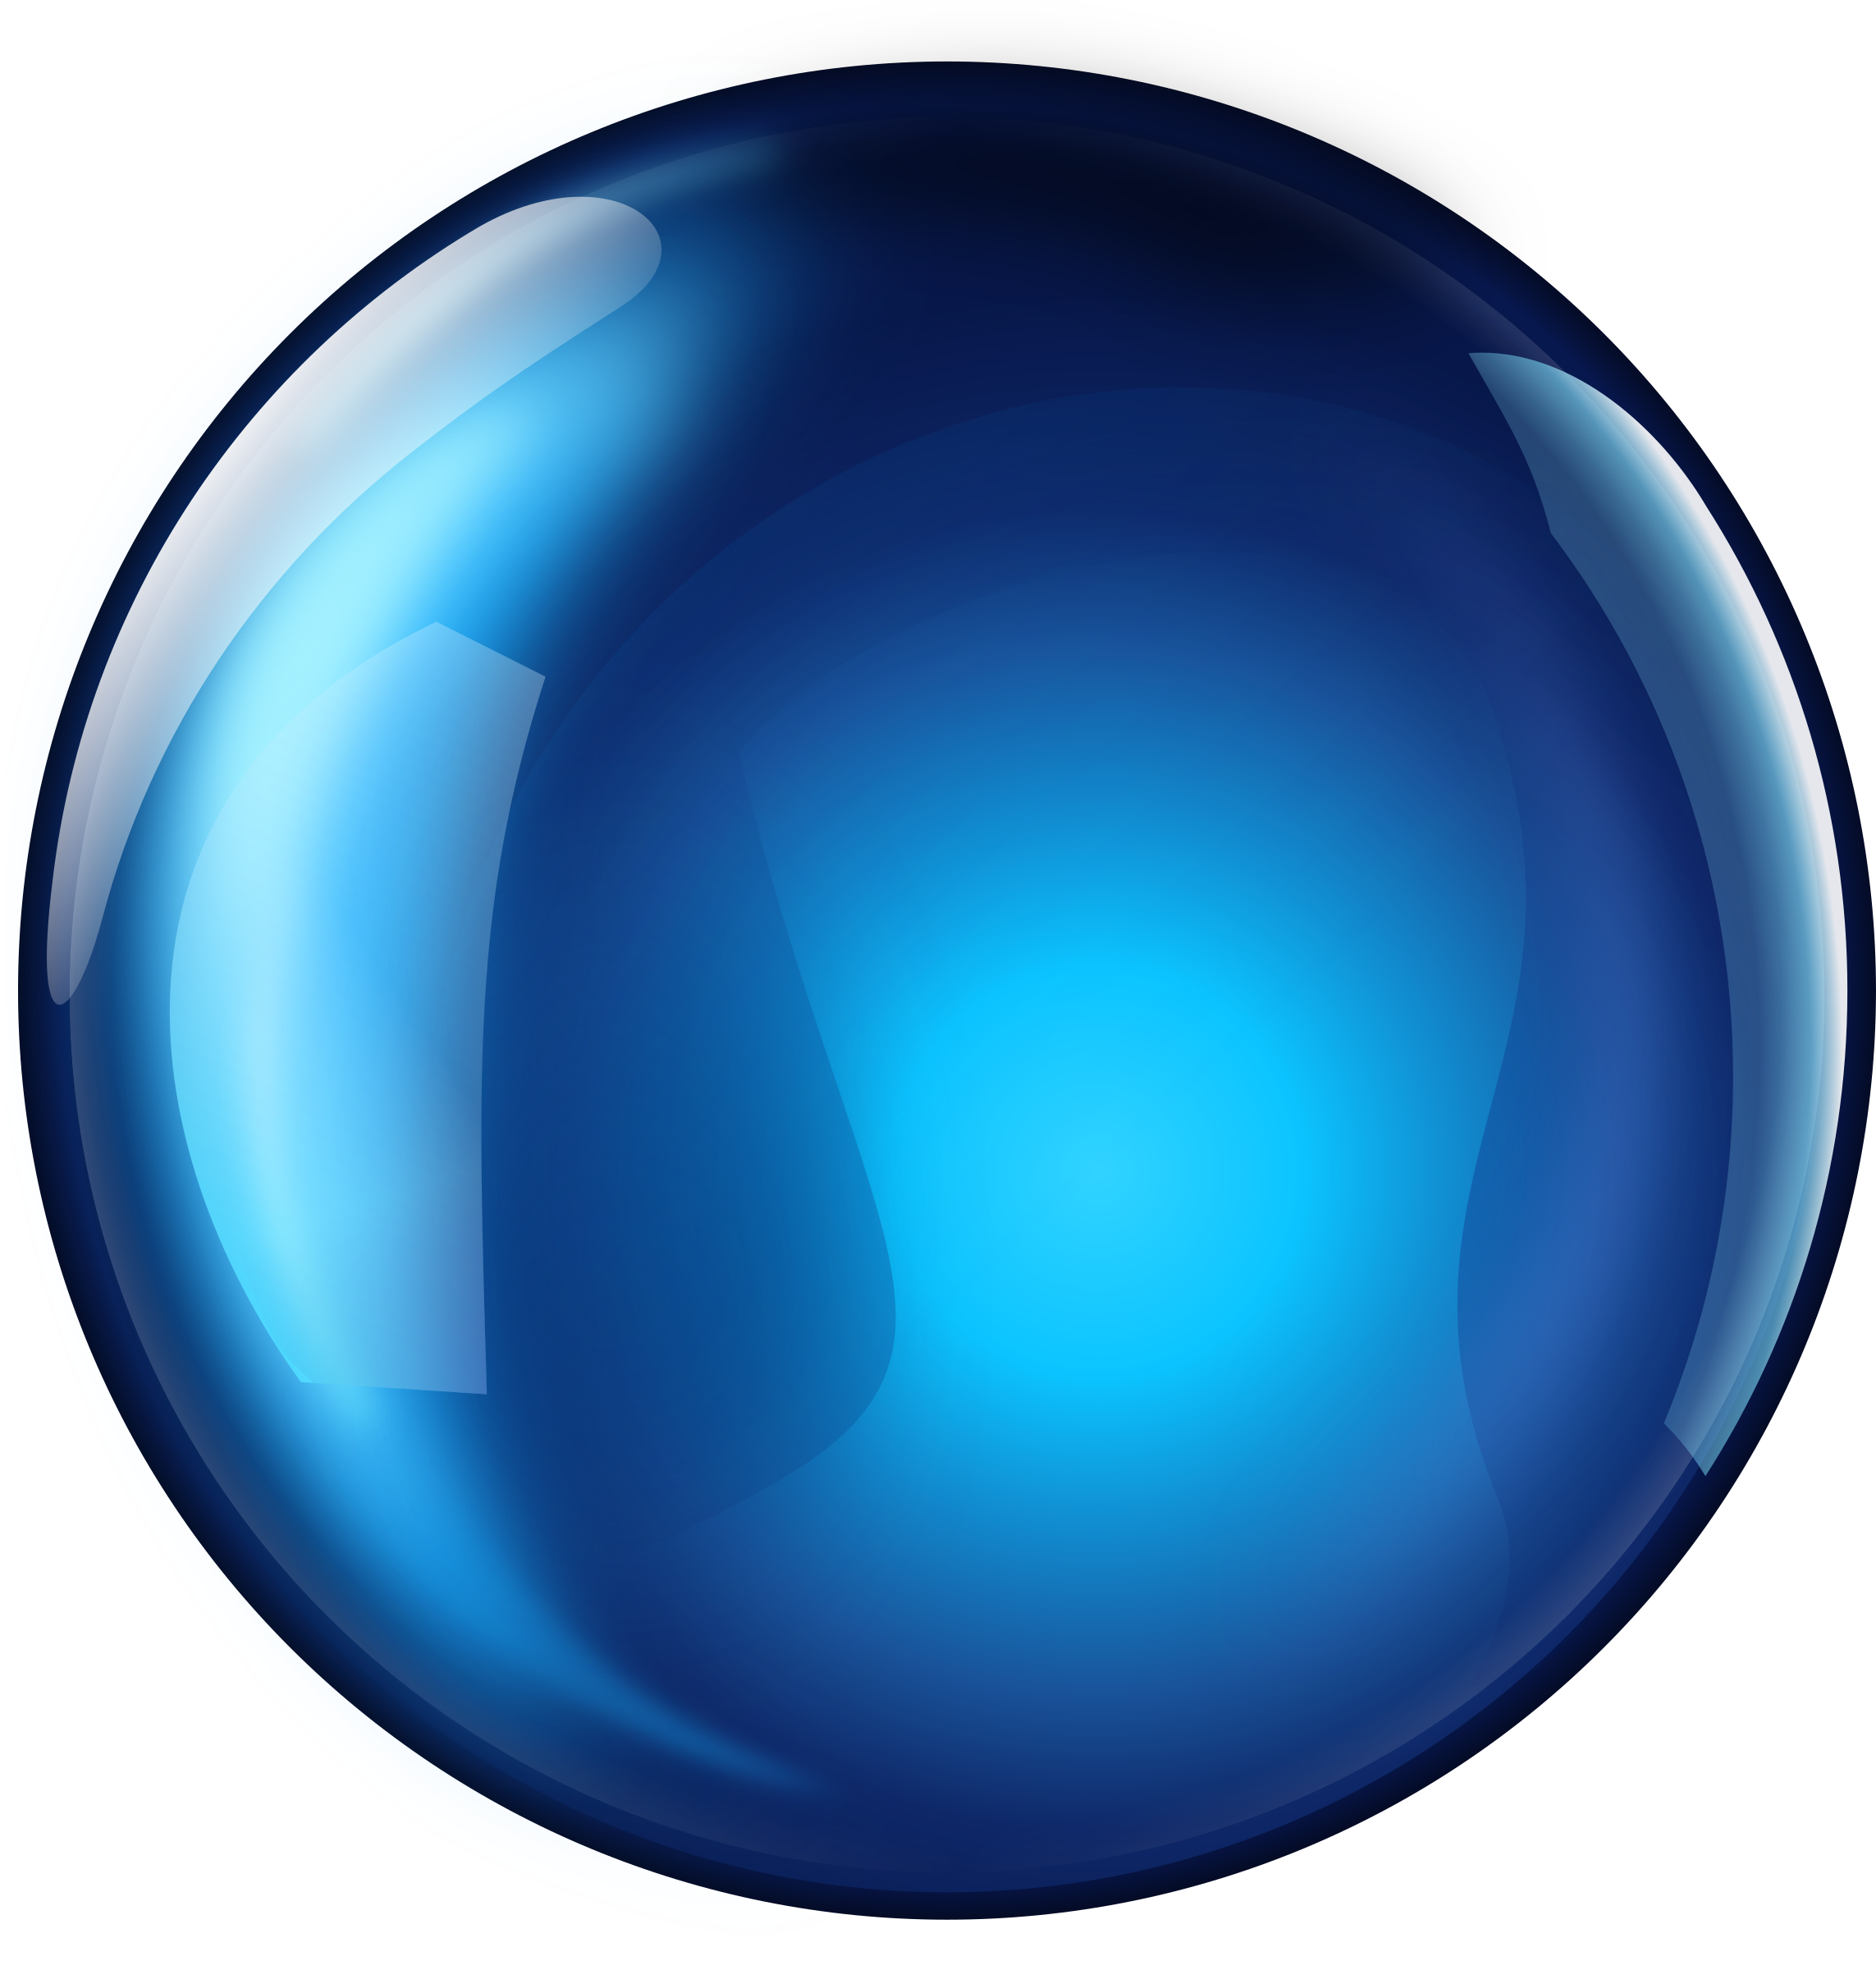 png transparent download . Sphere clipart